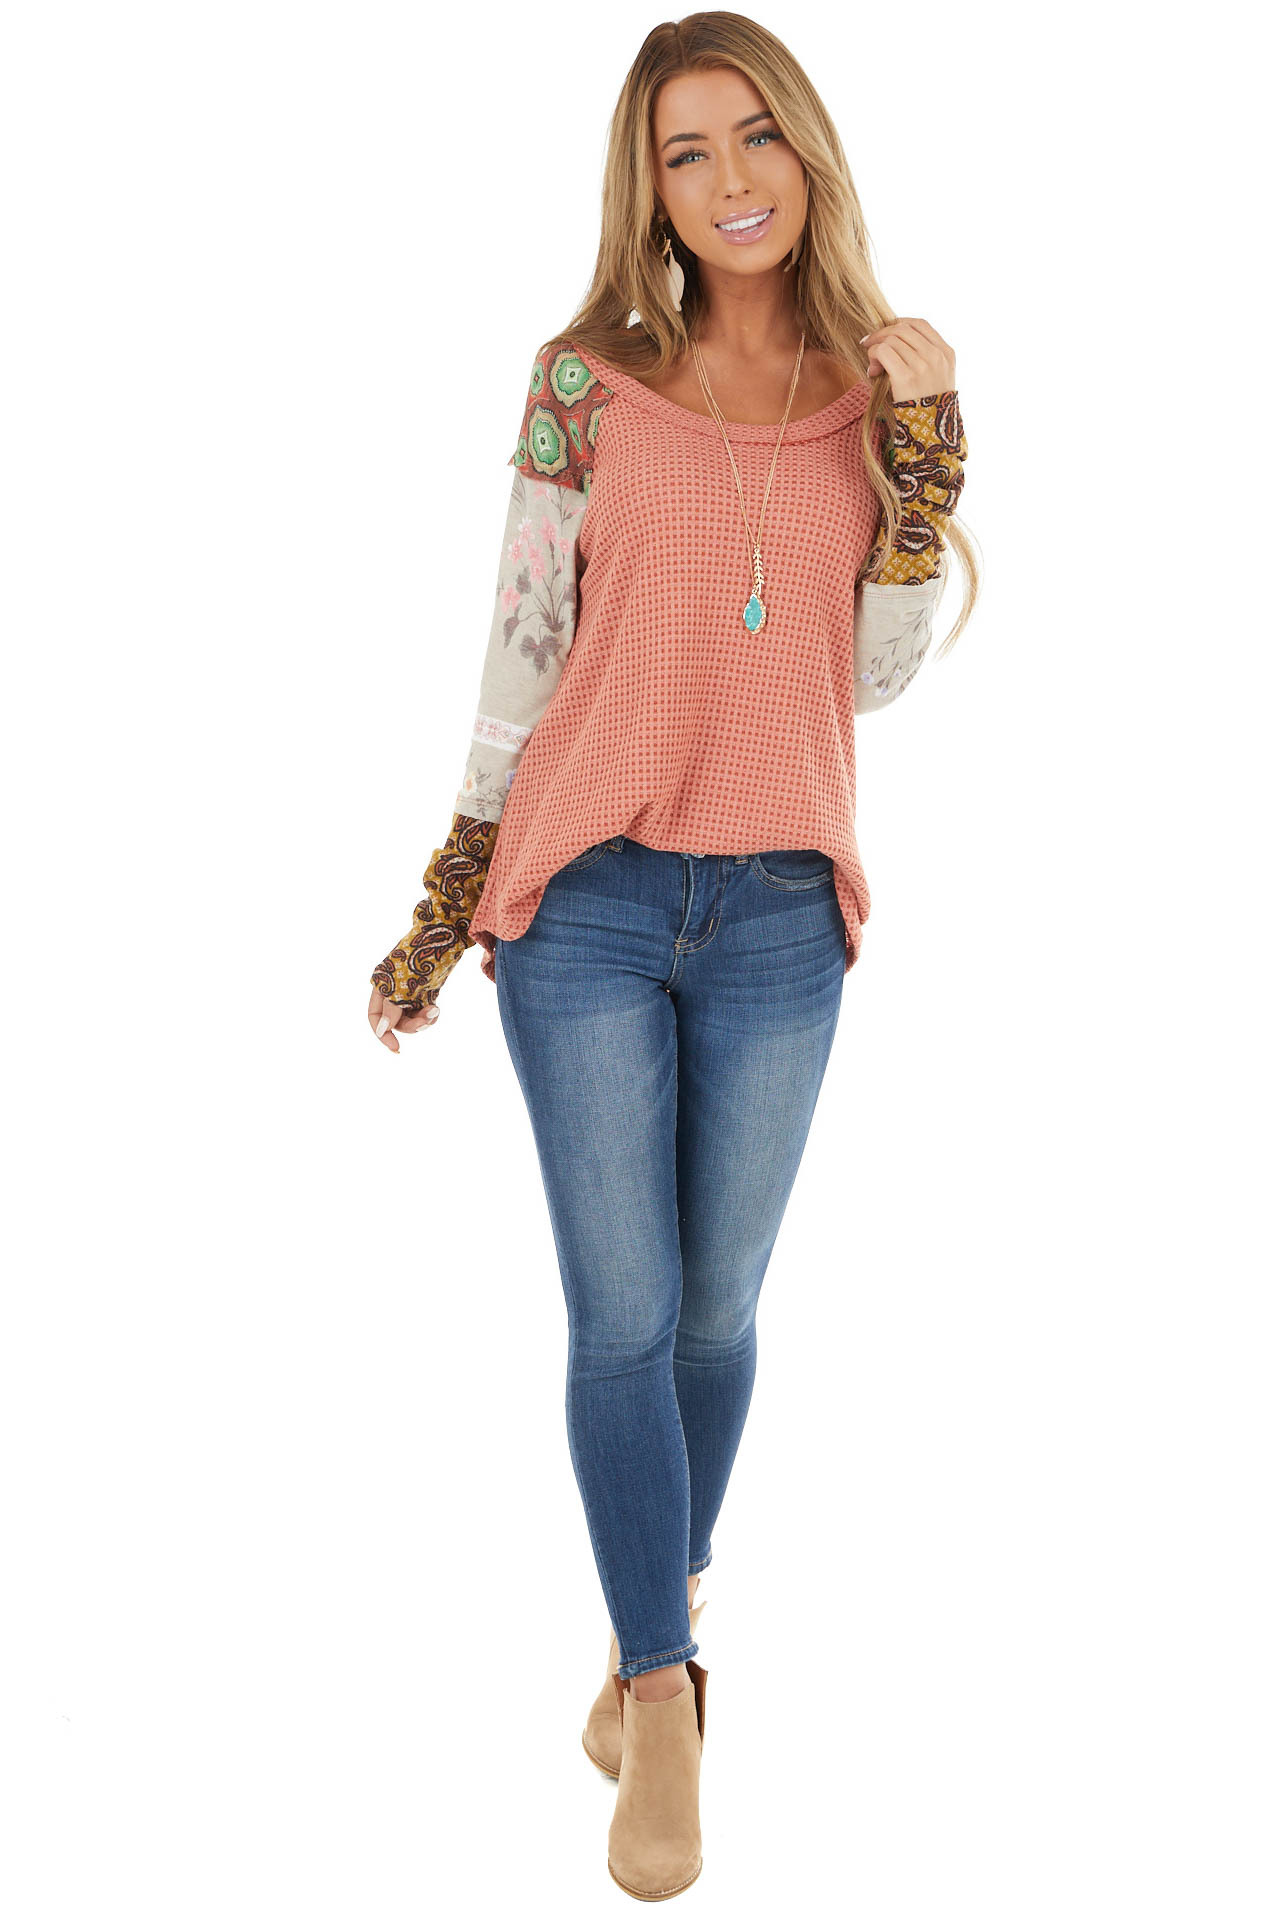 Salmon and Rust Knit Top with Contrast Multi Print Sleeves